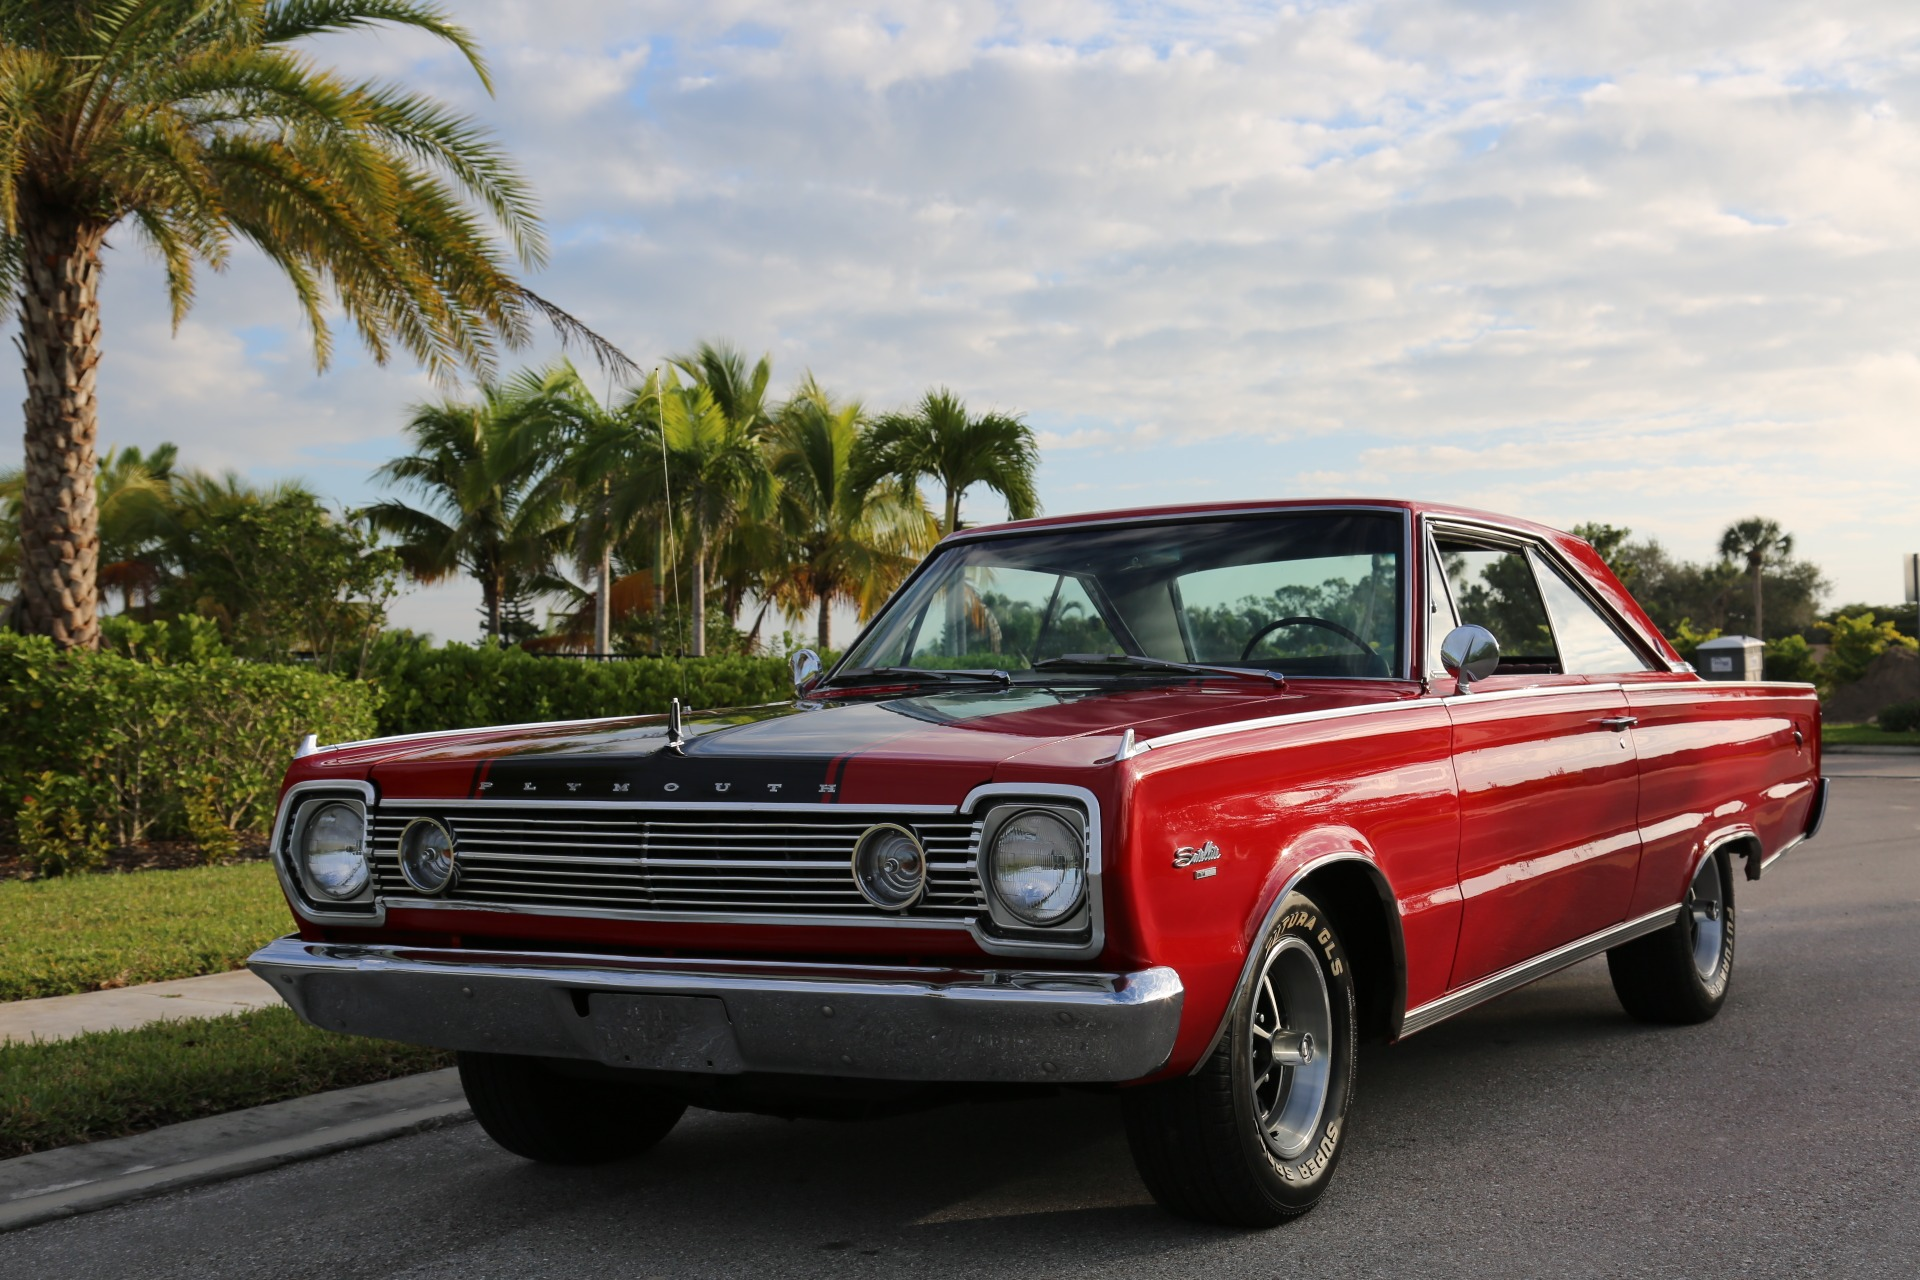 Used 1966 Plymouth Satellite 440 V8 Automatic for sale Sold at Muscle Cars for Sale Inc. in Fort Myers FL 33912 4